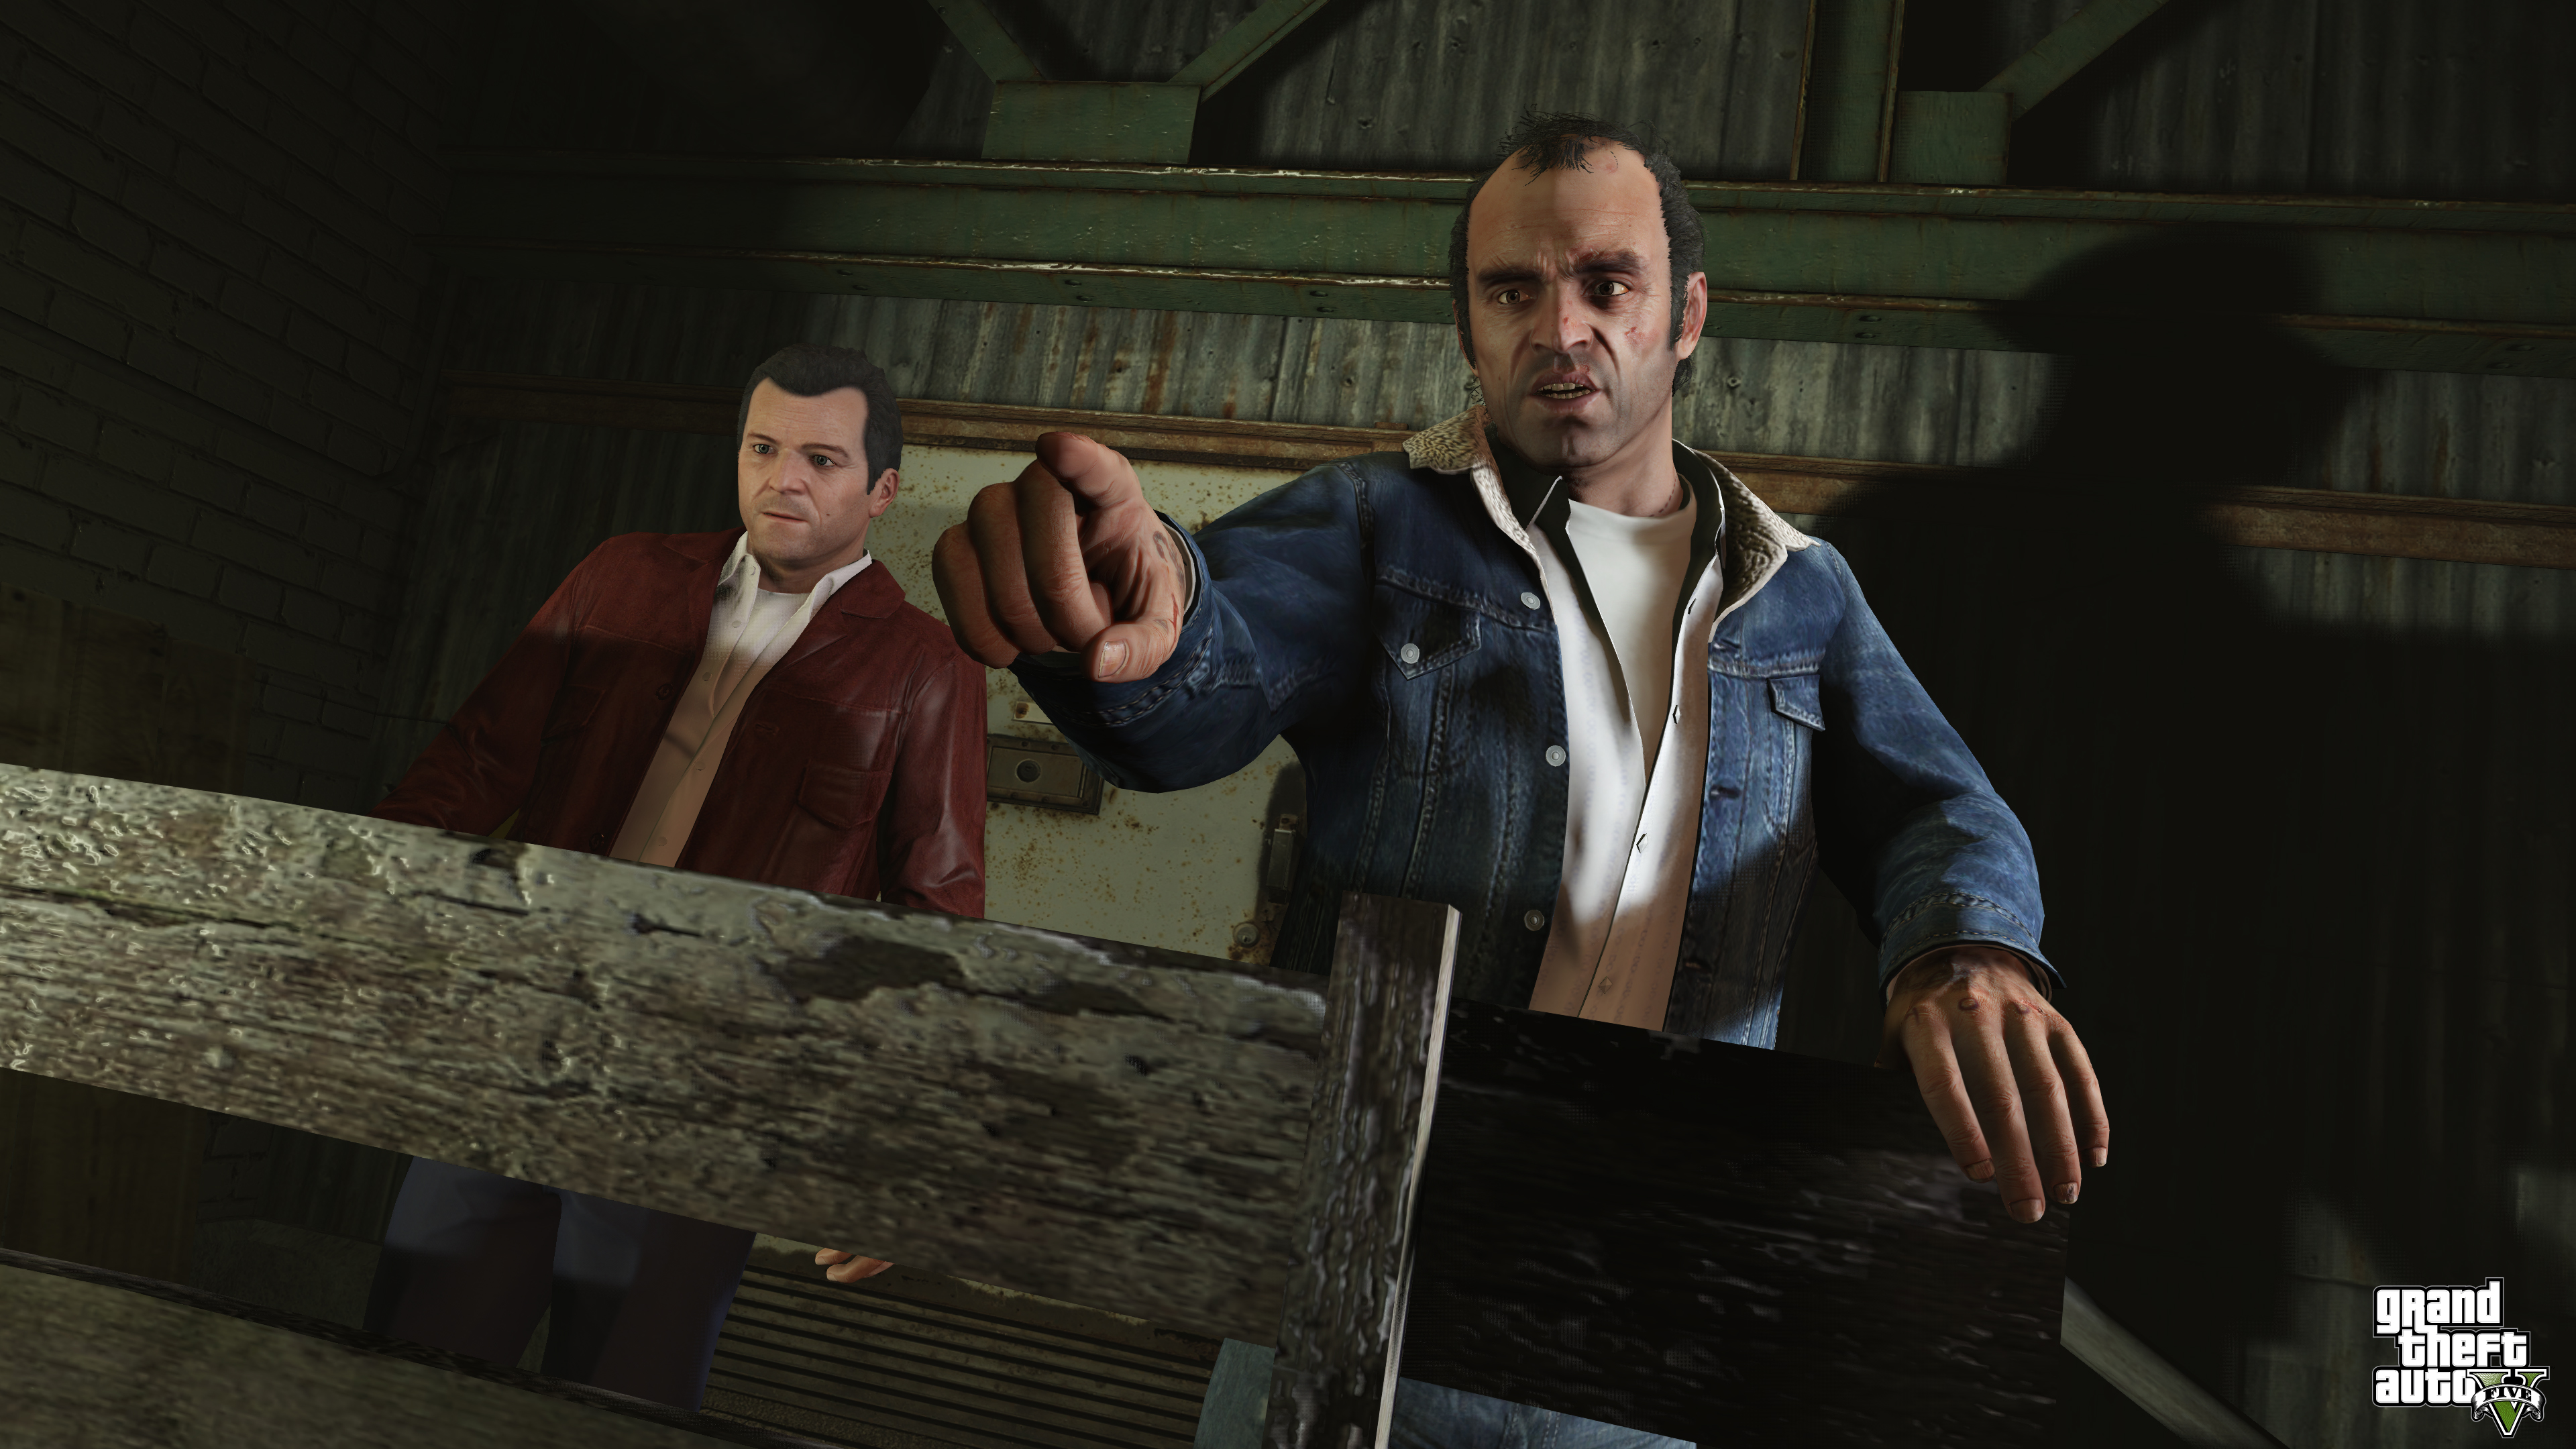 Rockstar Is Seizing 'Stealth Money' from Cheaters in 'Grand Theft